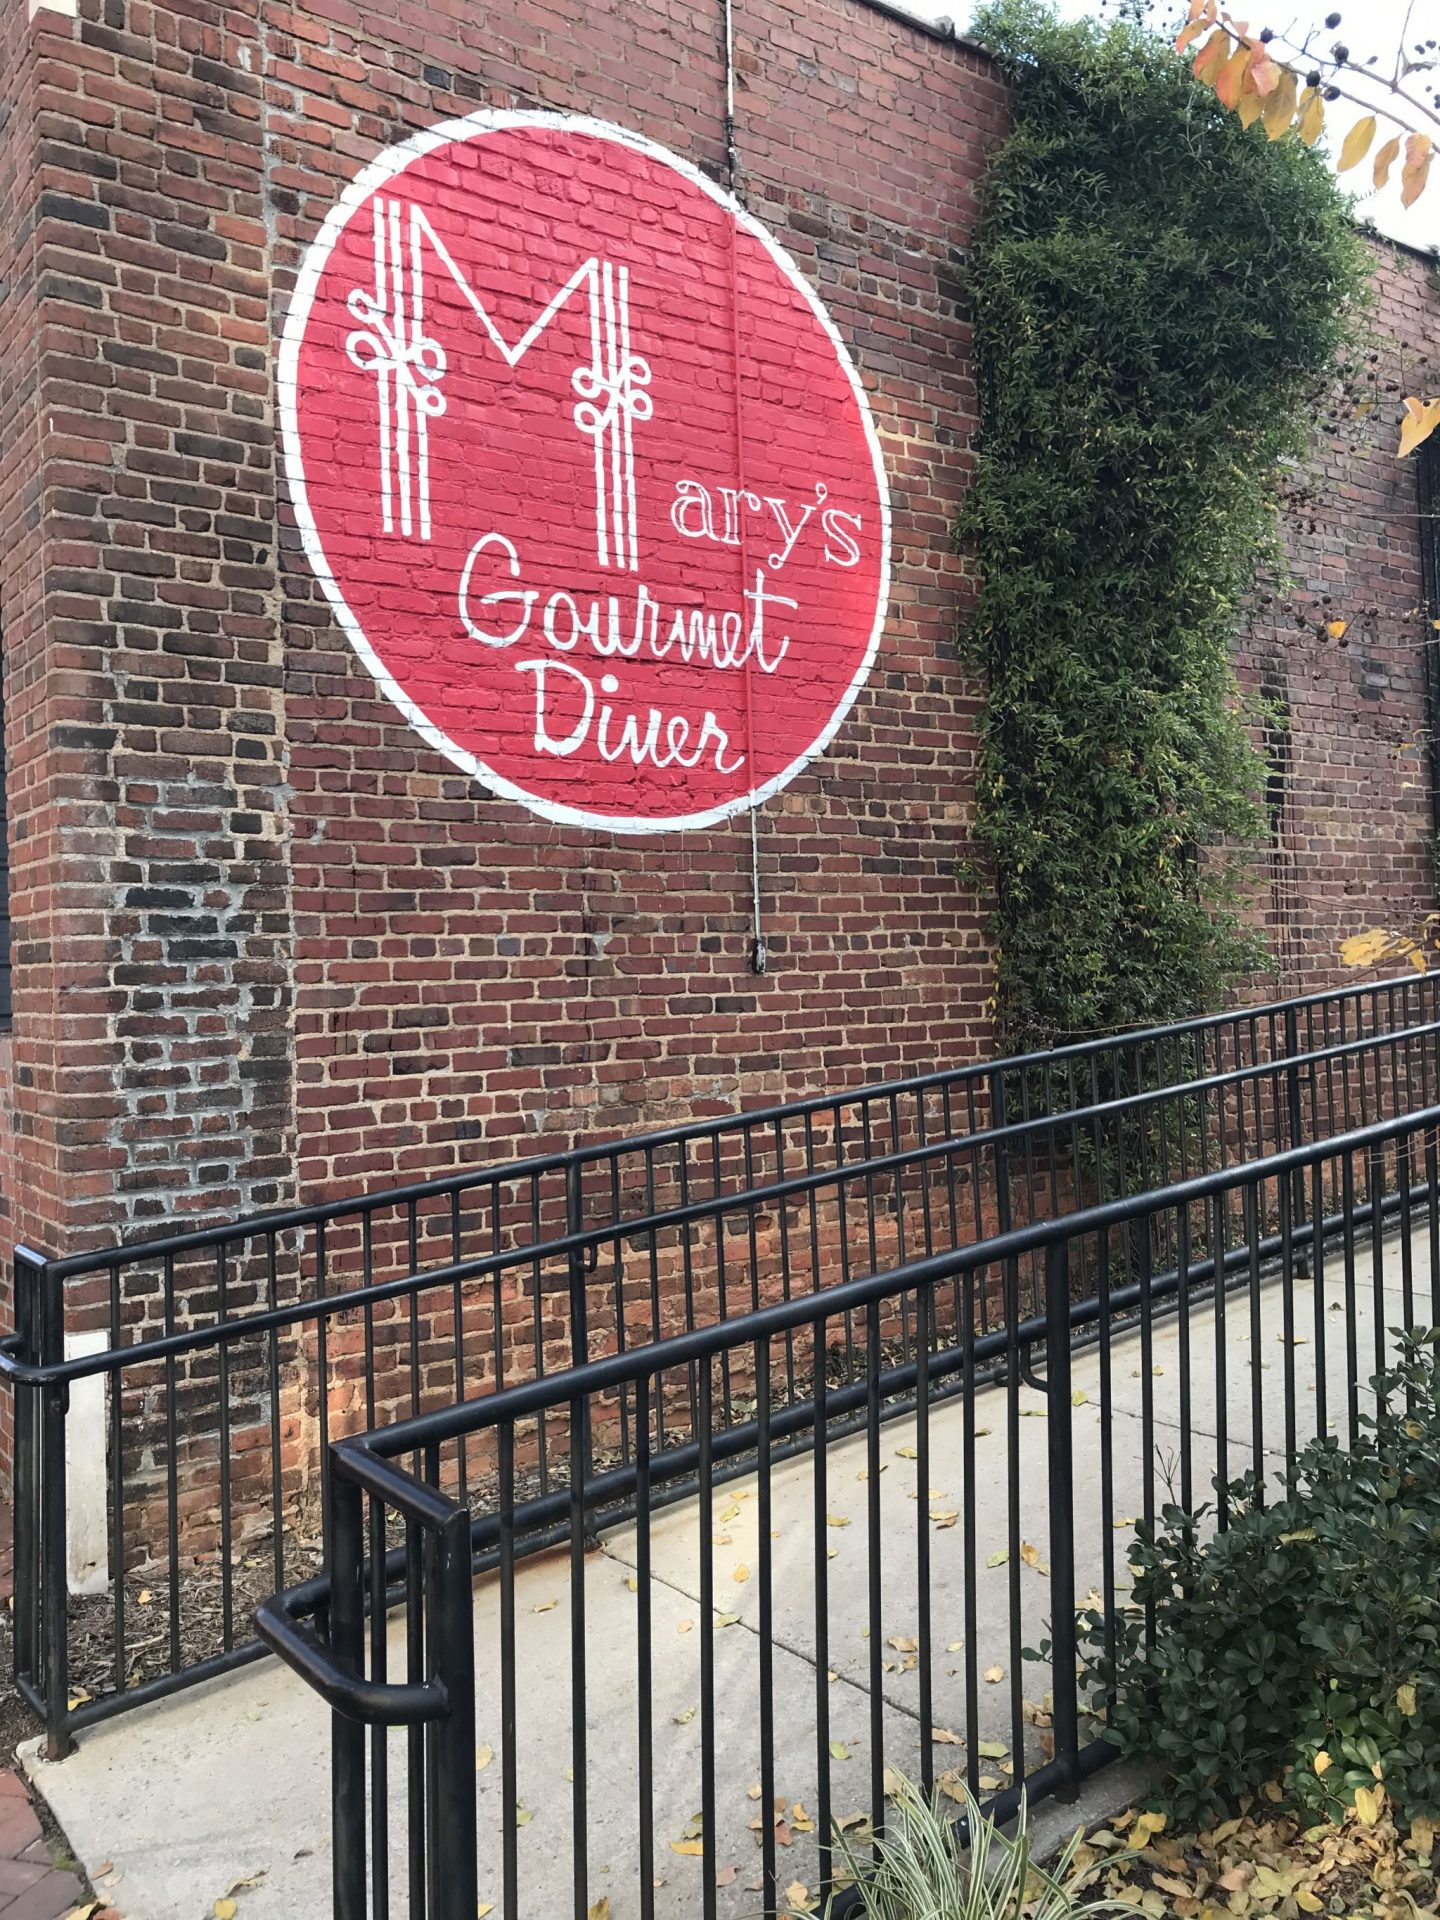 Mary's Gourmet Diner - Winston Salem - Lauren Schwaiger Travel Blog